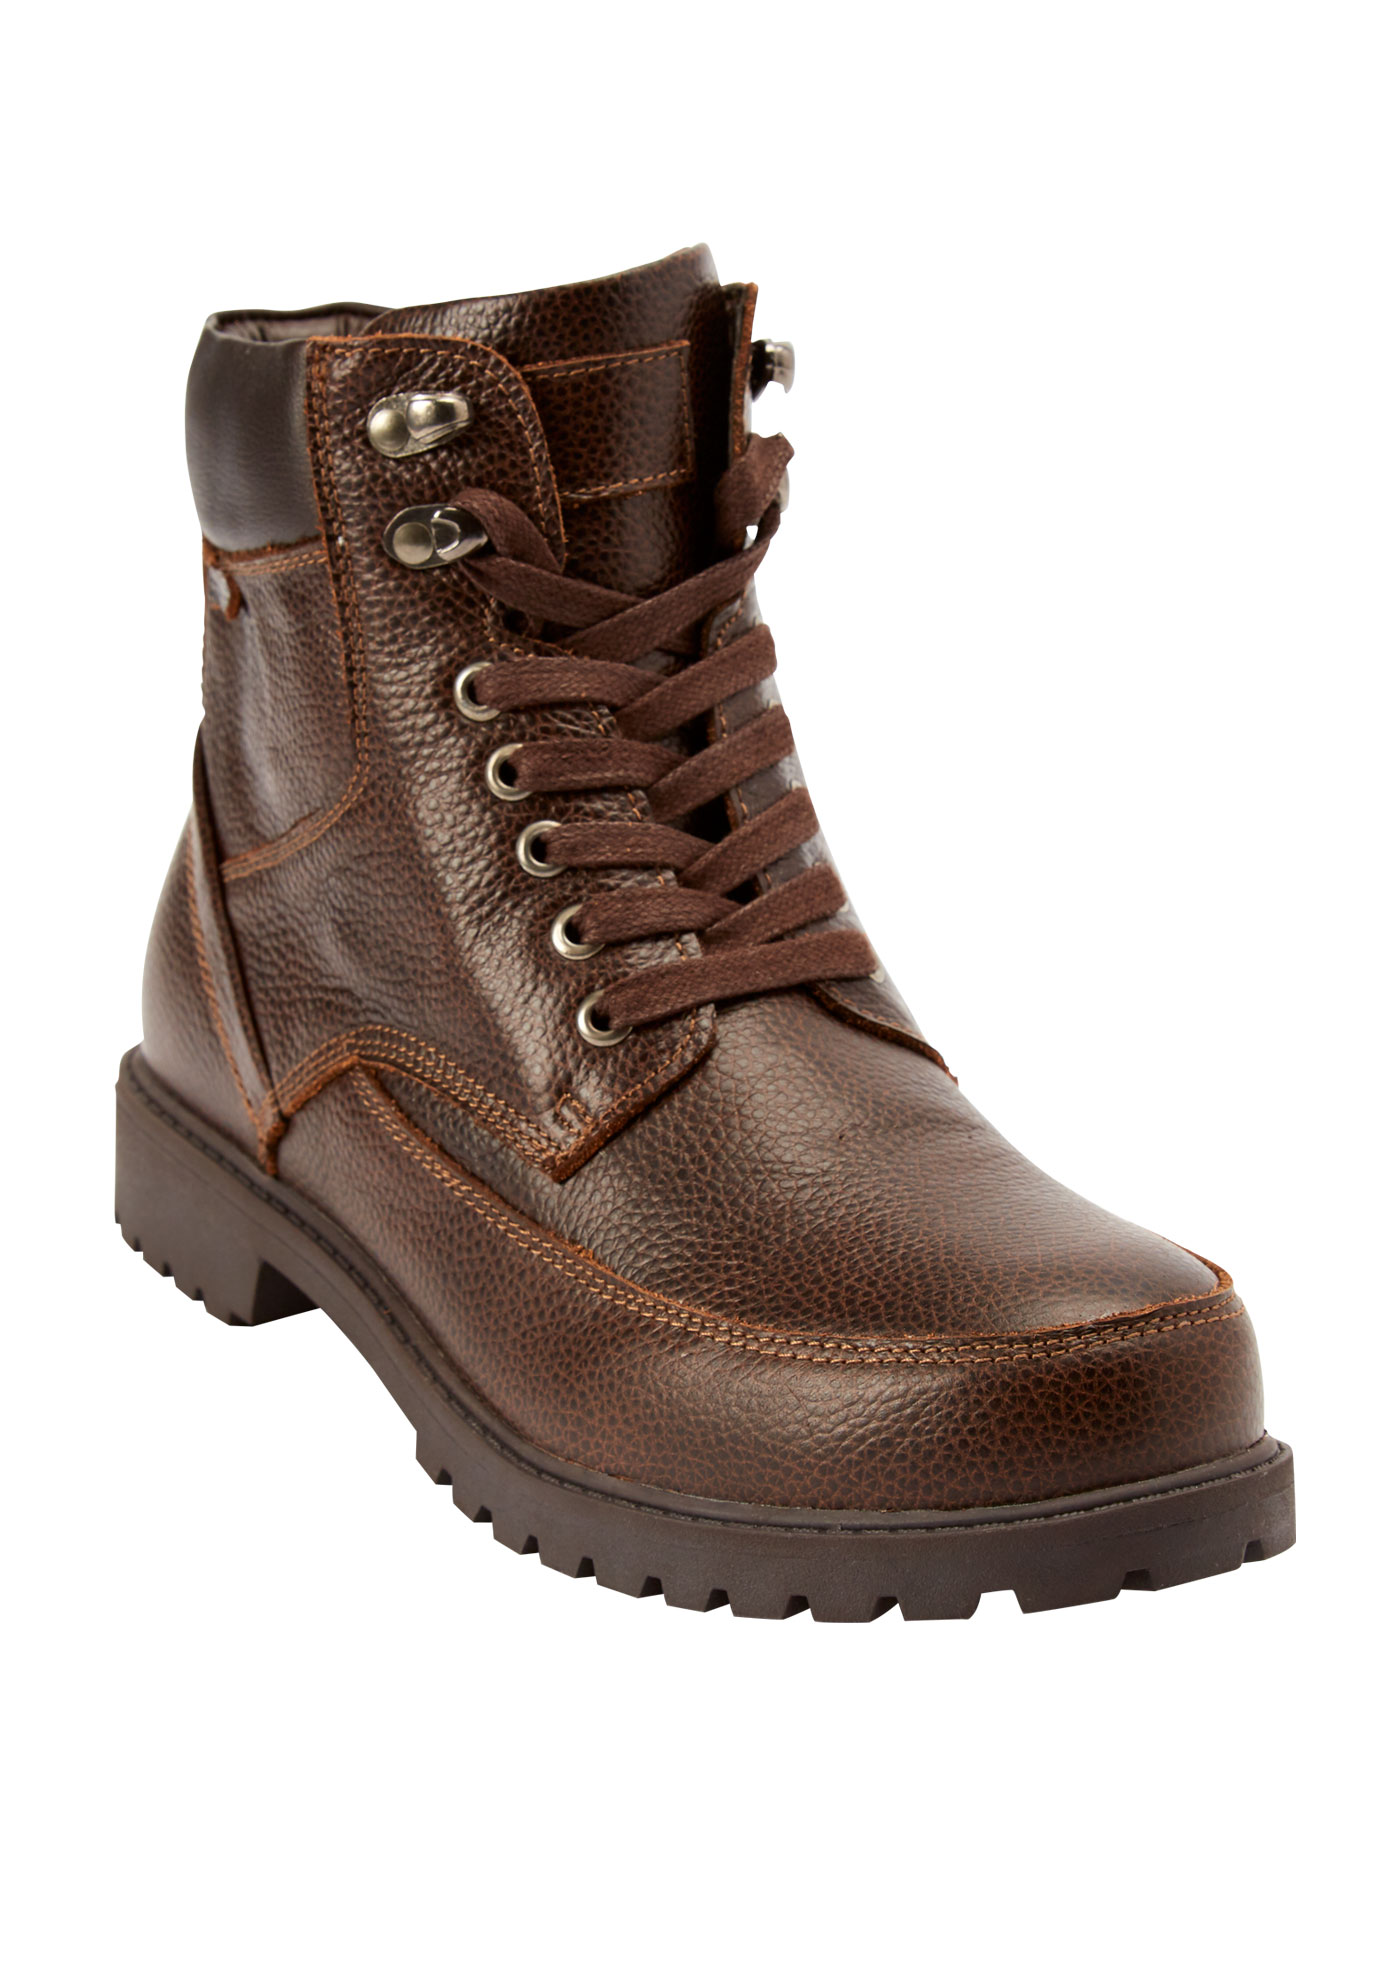 Boulder Creek® Zip-up Work Boots,